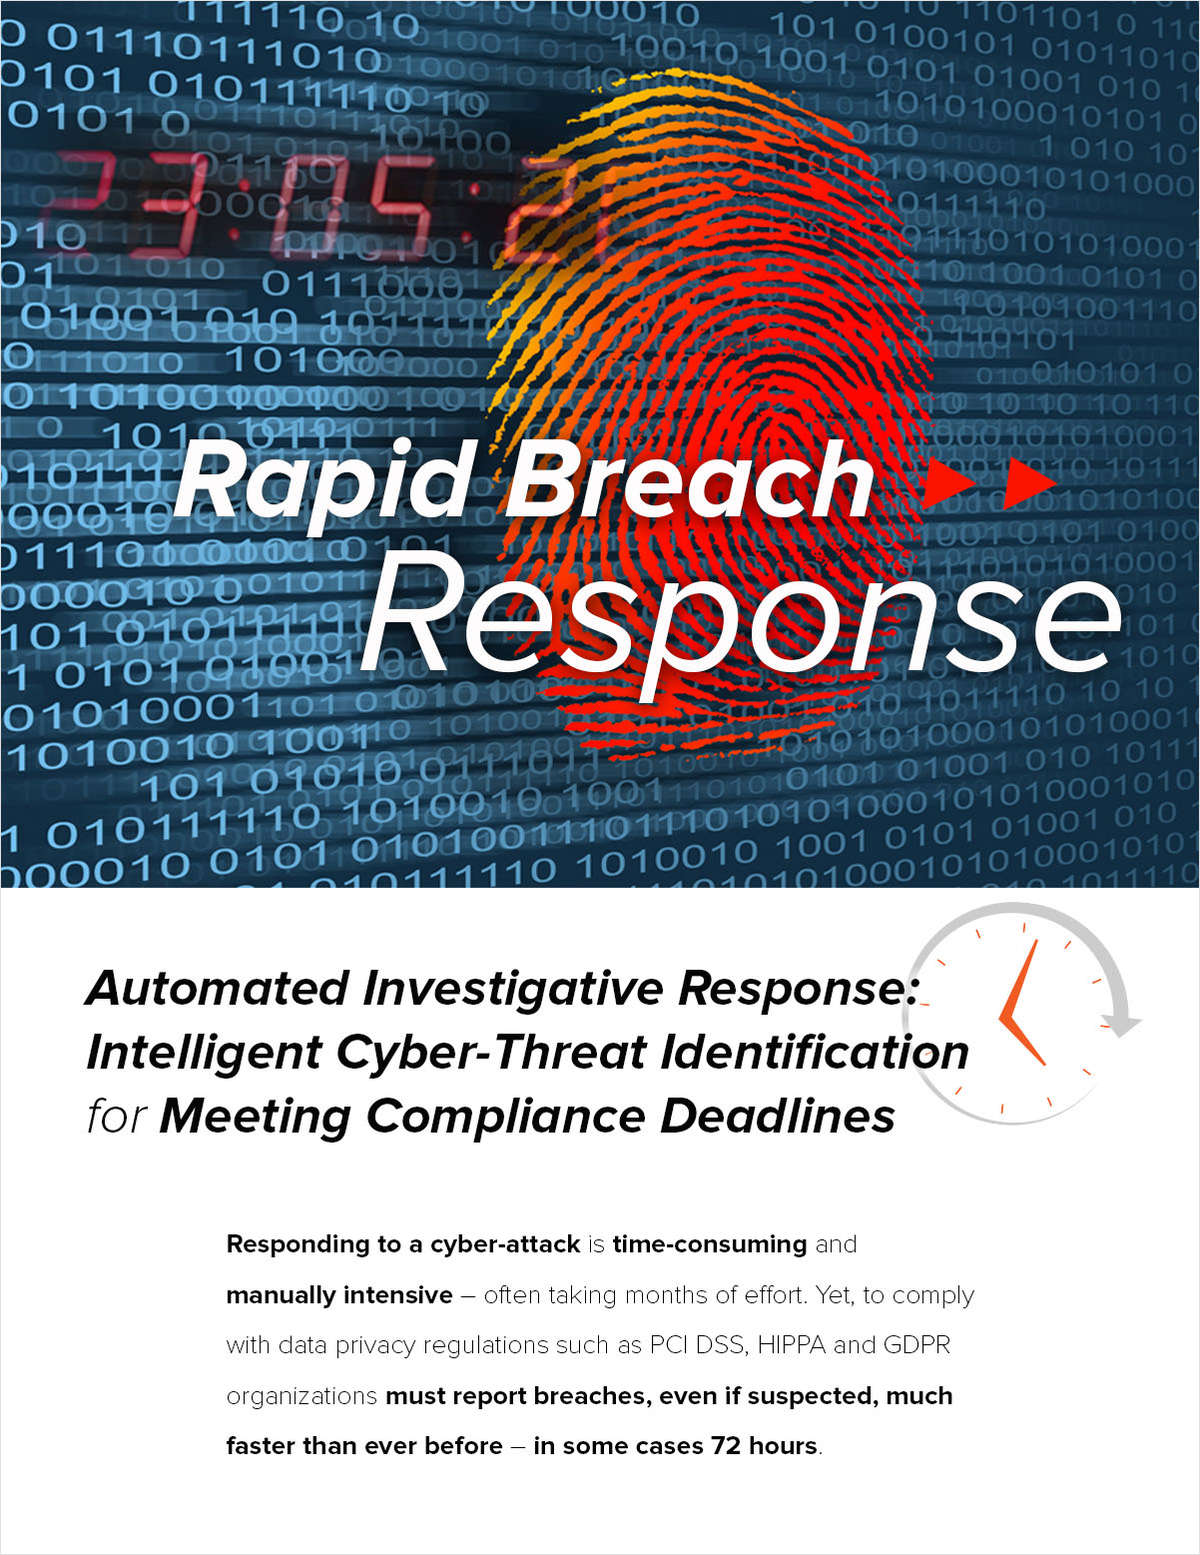 Automated Investigative Response: Intelligent Cyber-Threat Identification and Complete Data Extraction